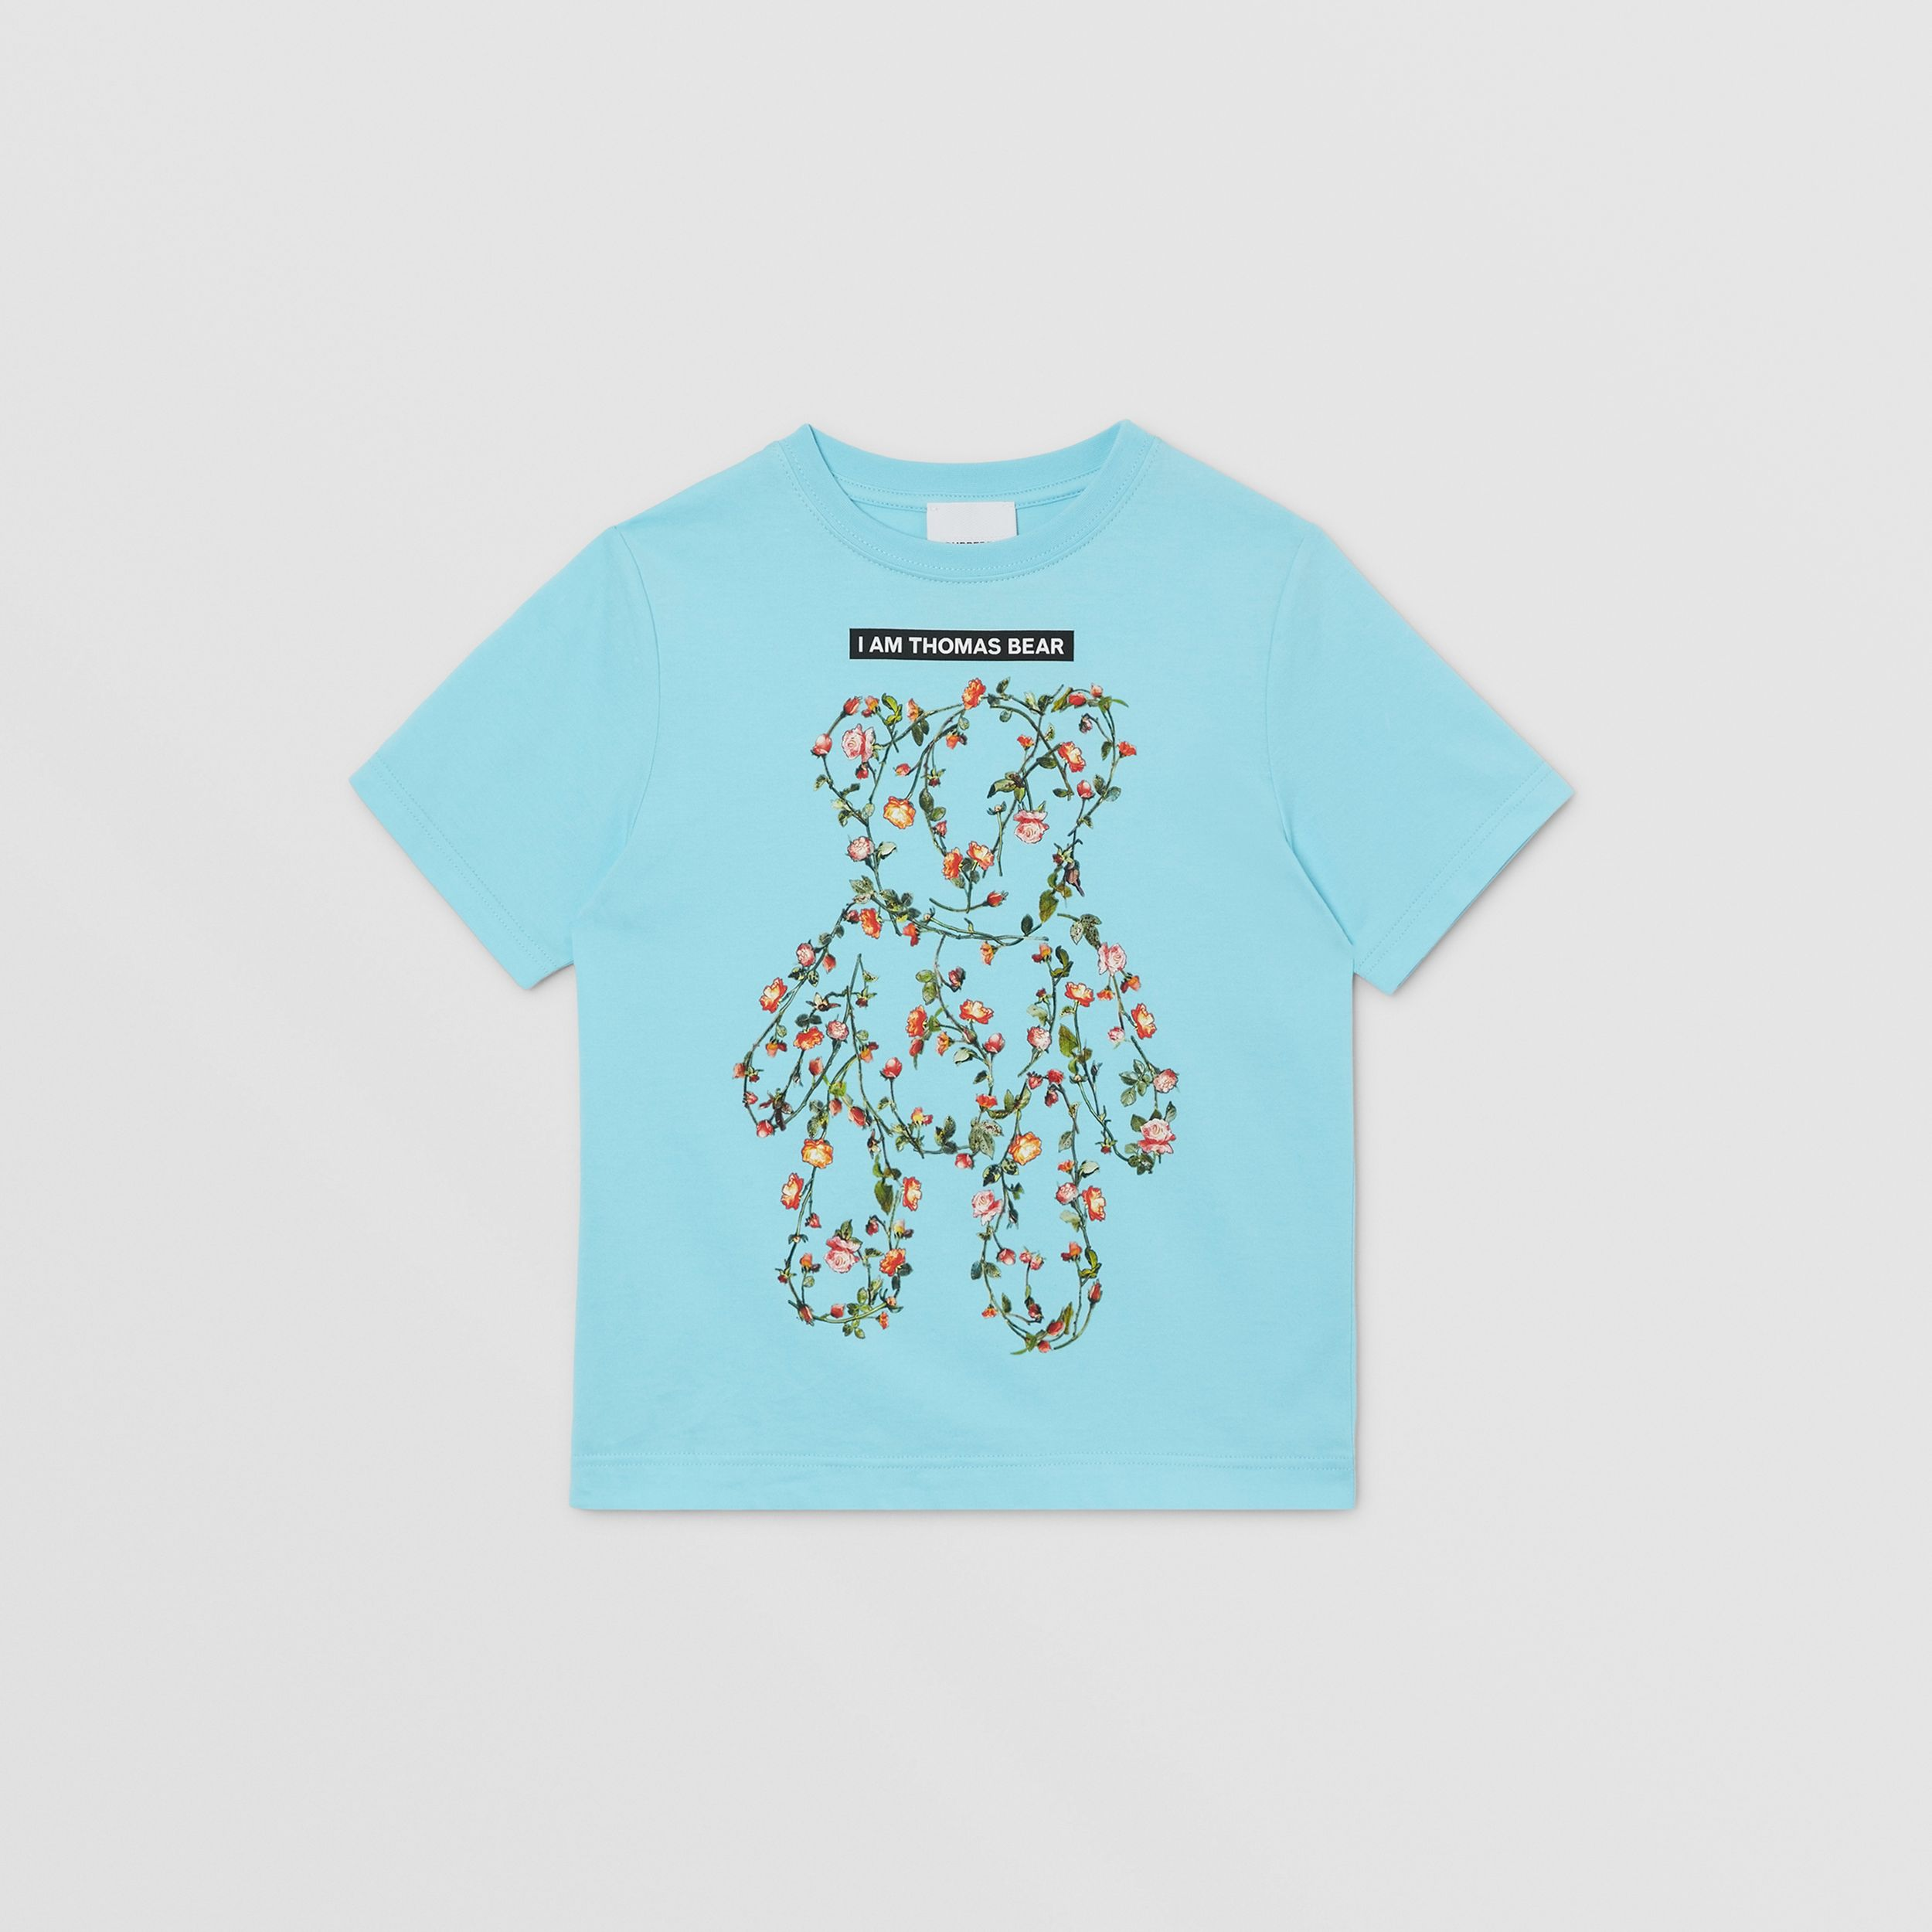 Montage Print Cotton T-shirt in Pale Turquoise | Burberry - 1